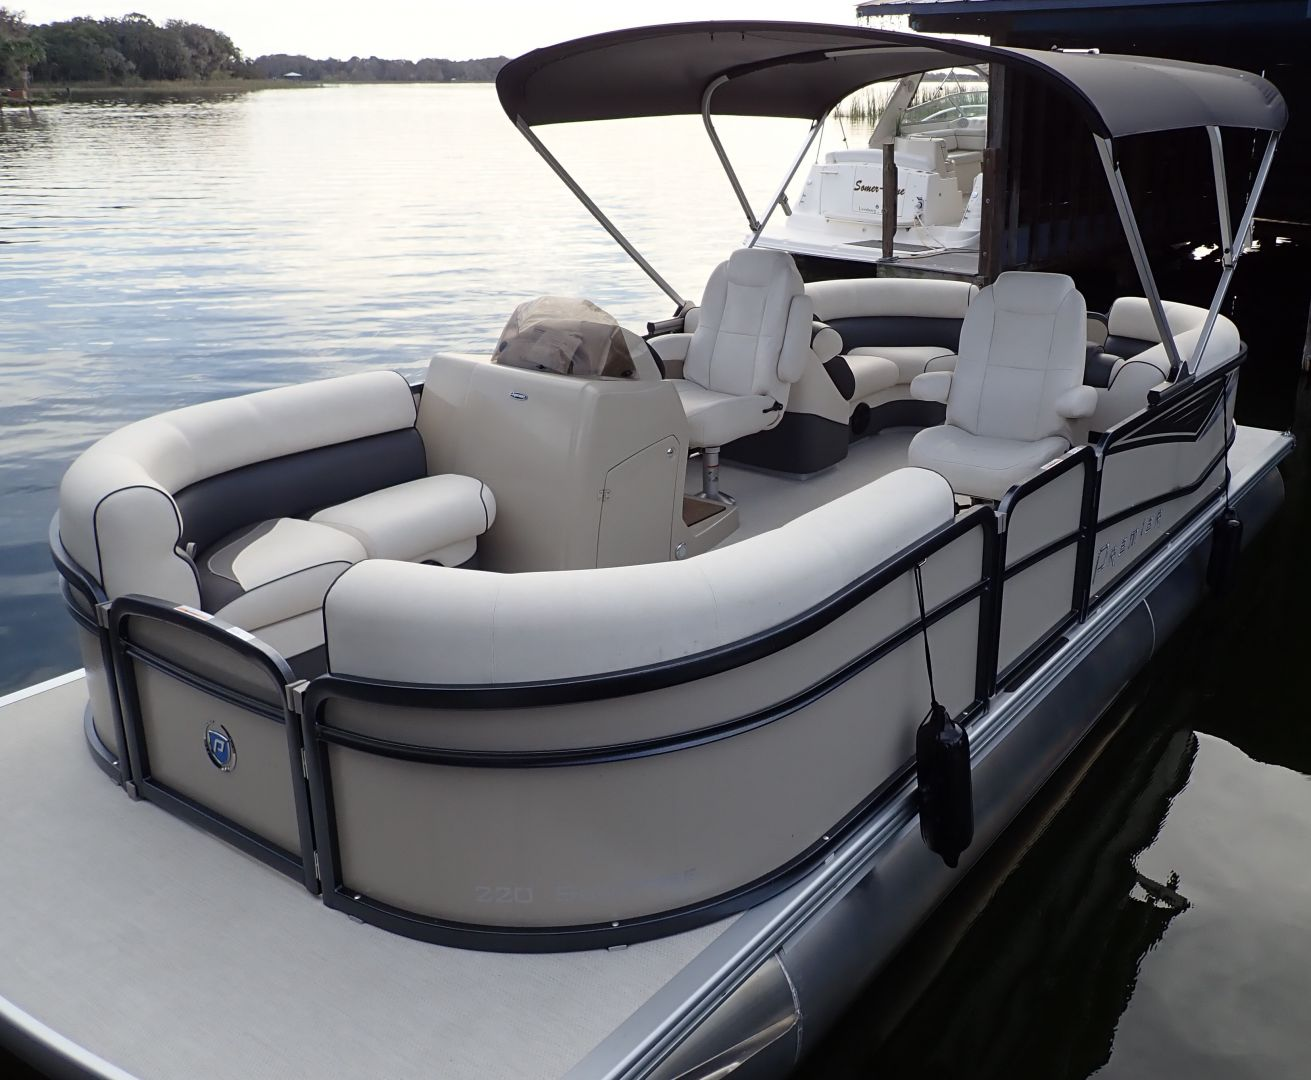 Harris Chain of Lakes Boat Rentals | Mount Dora Boating